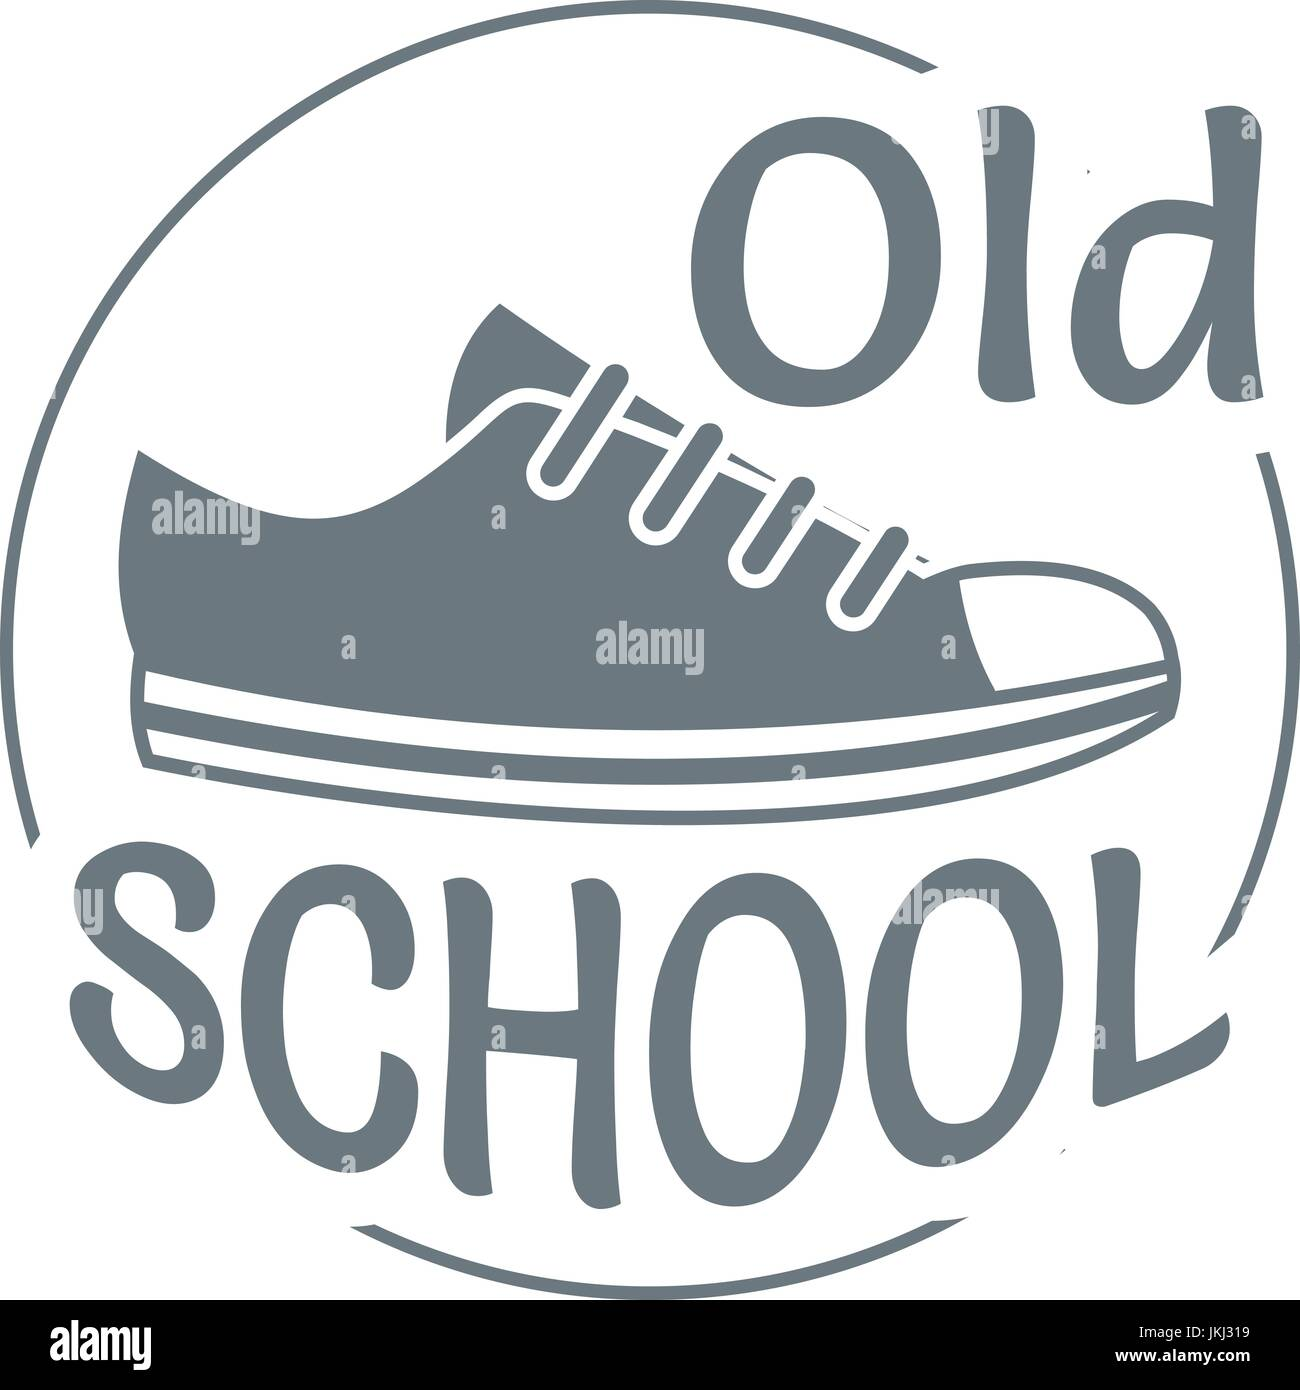 Old school logo, simple style - Stock Image